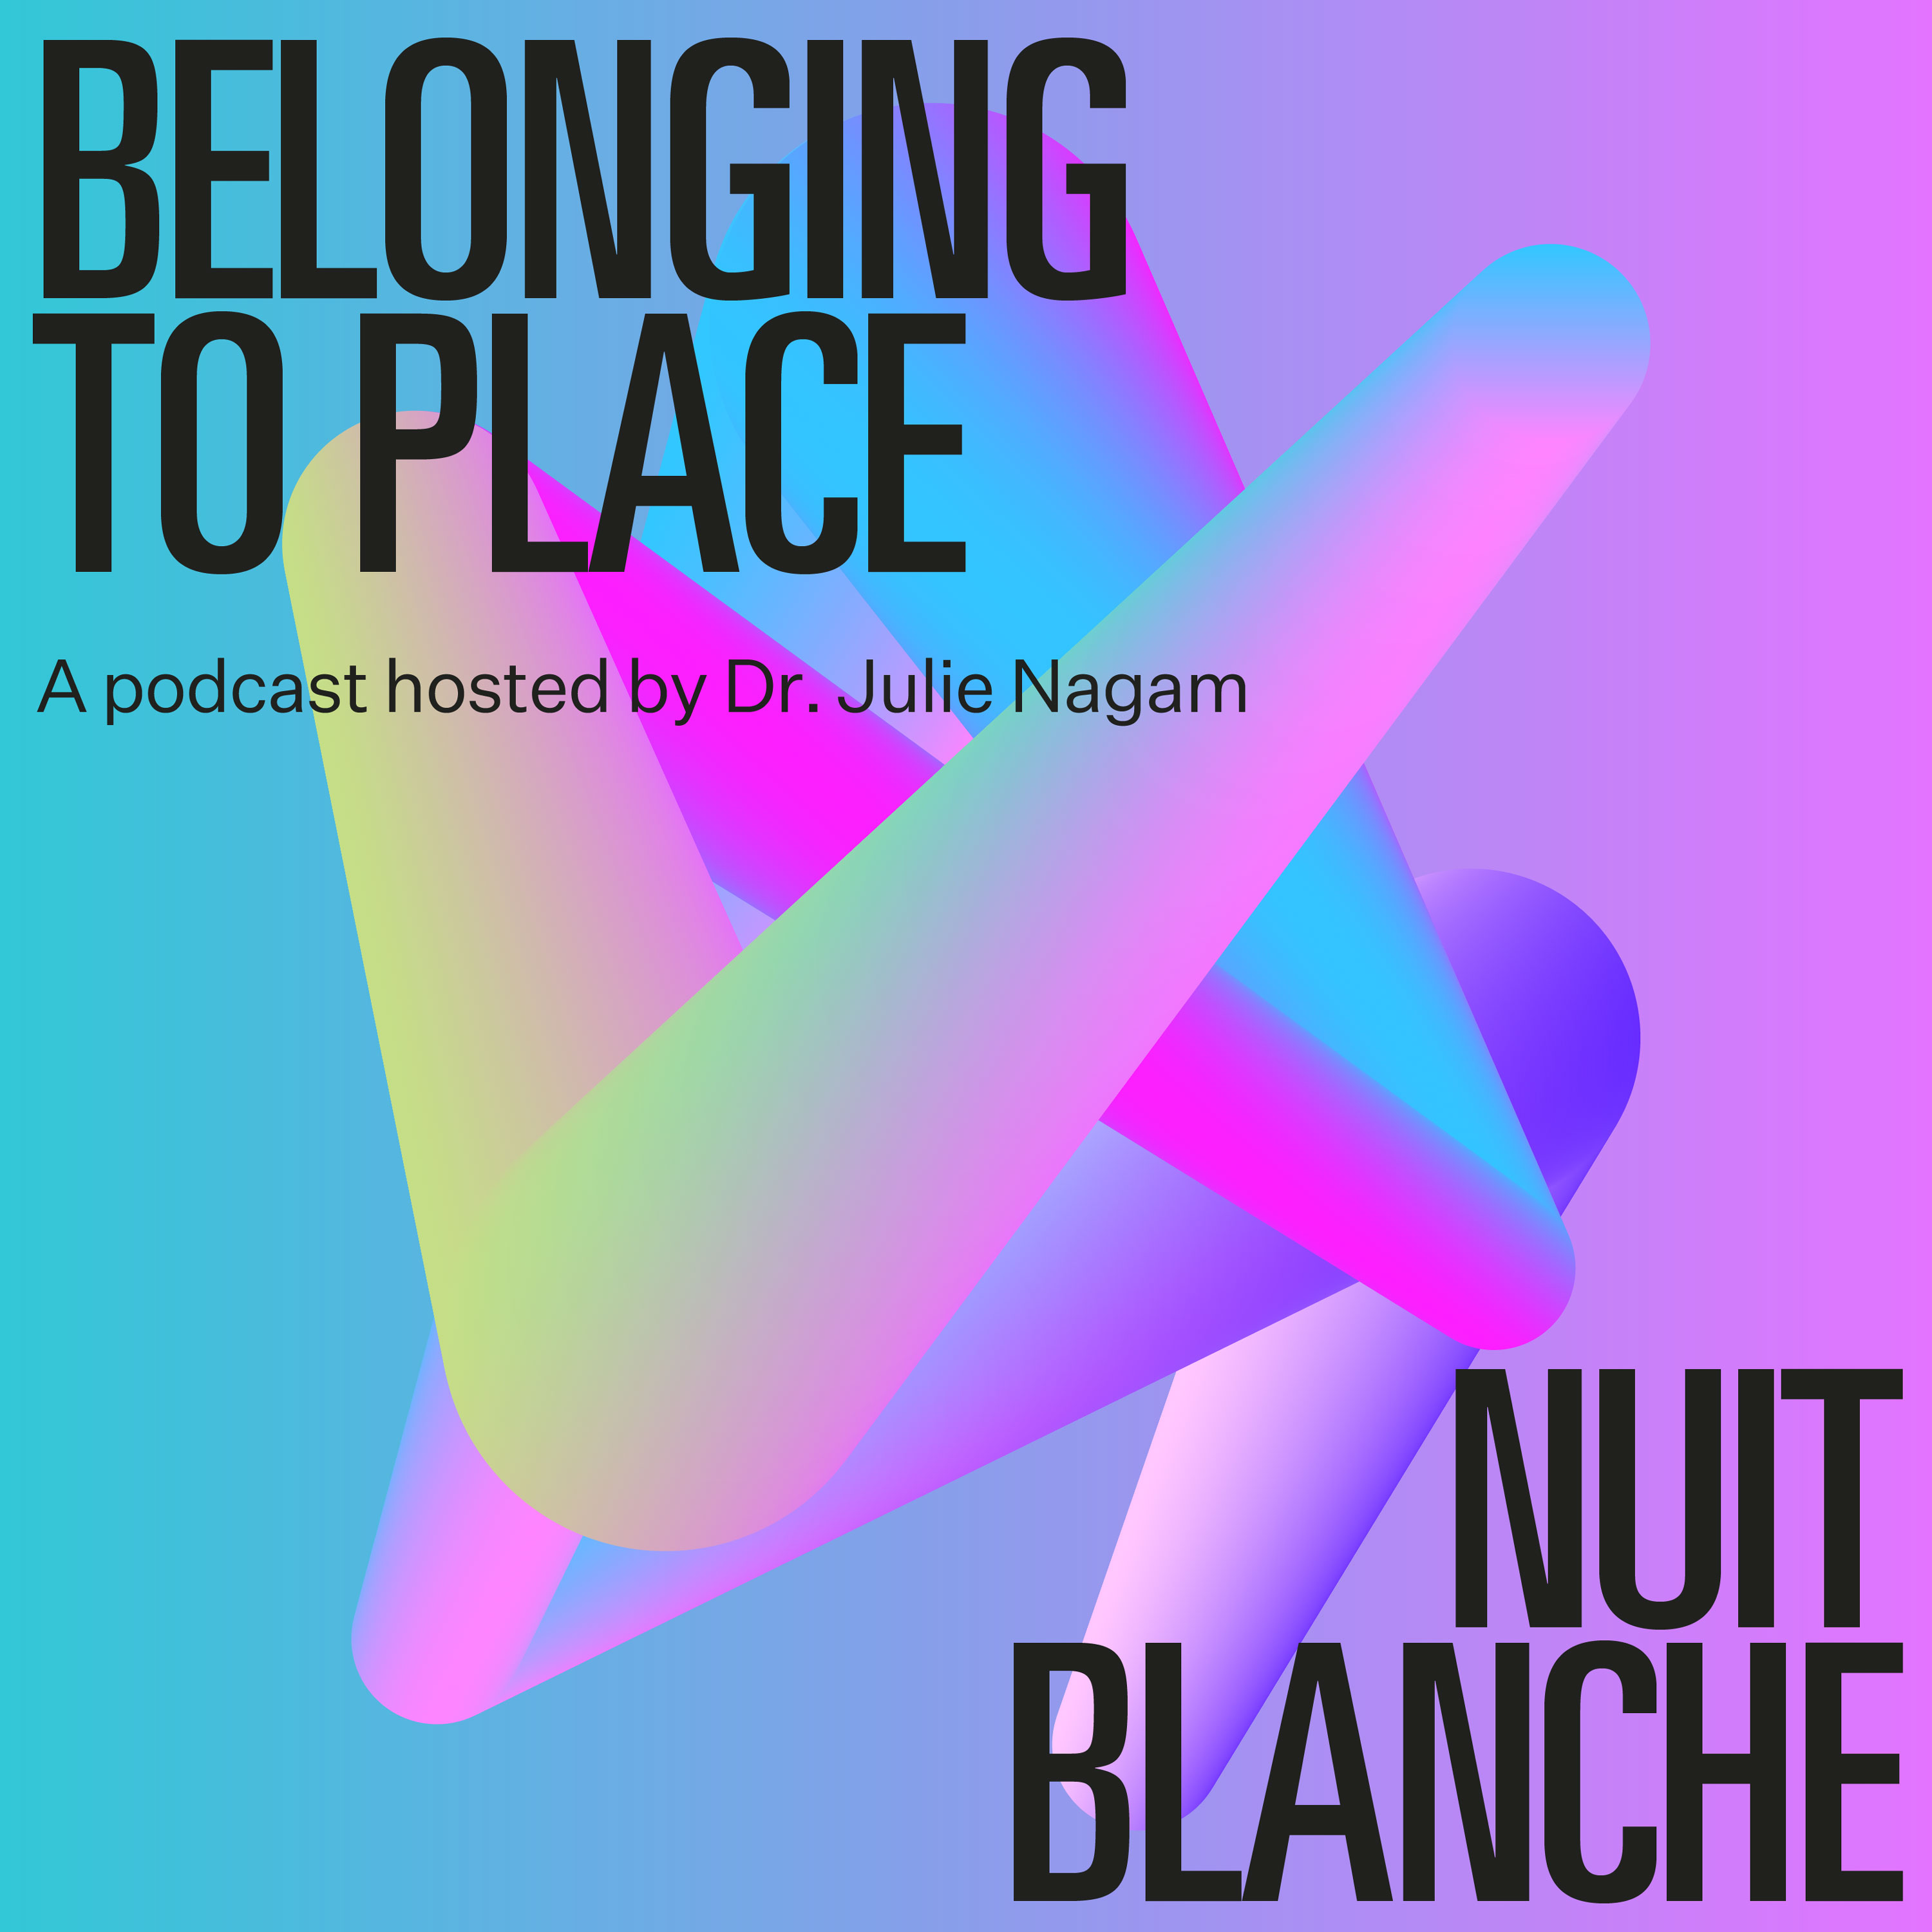 Artwork for podcast Belonging to Place